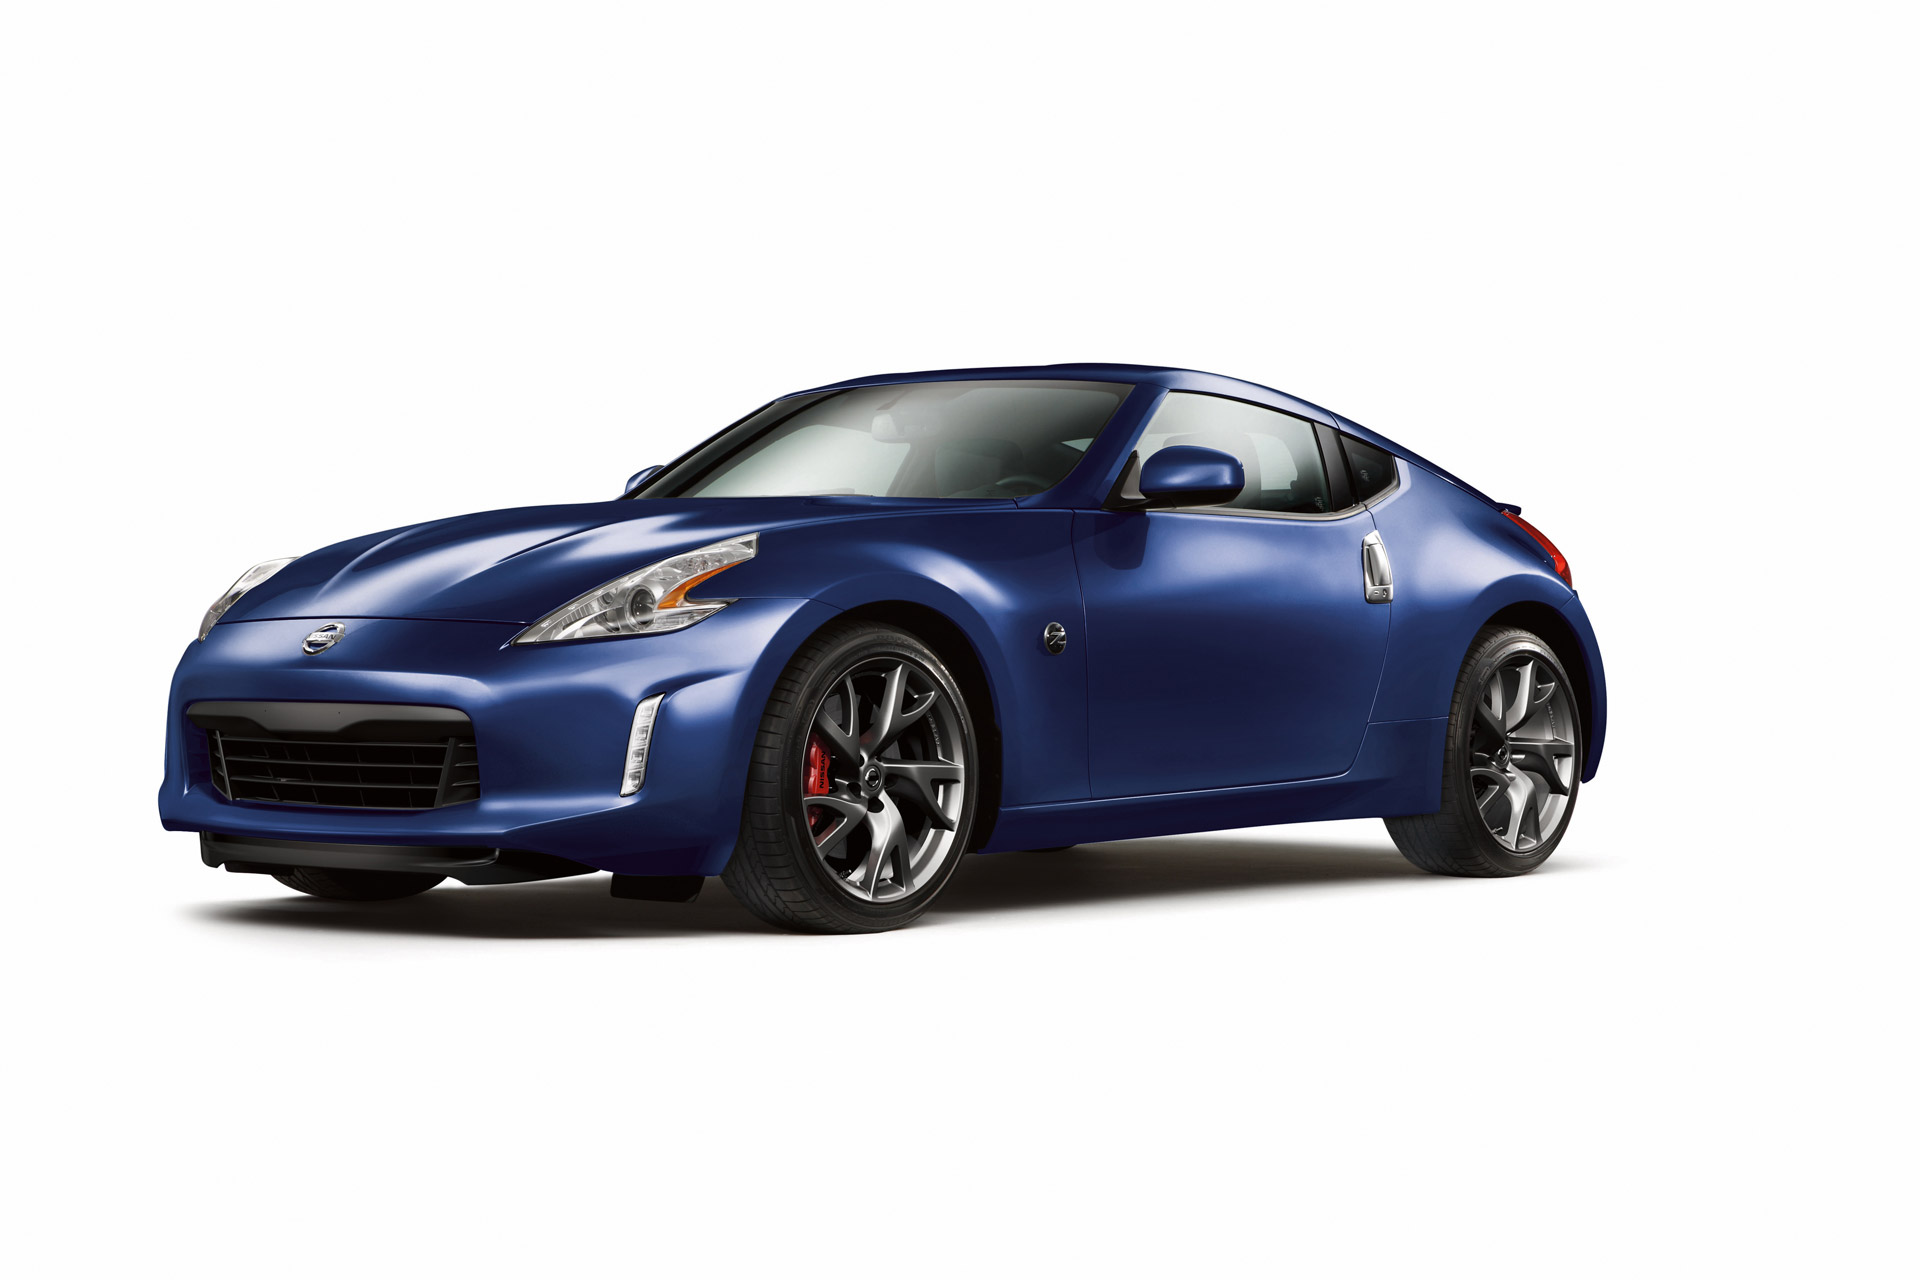 Used Cars For Sale In Chicago Nissan Z